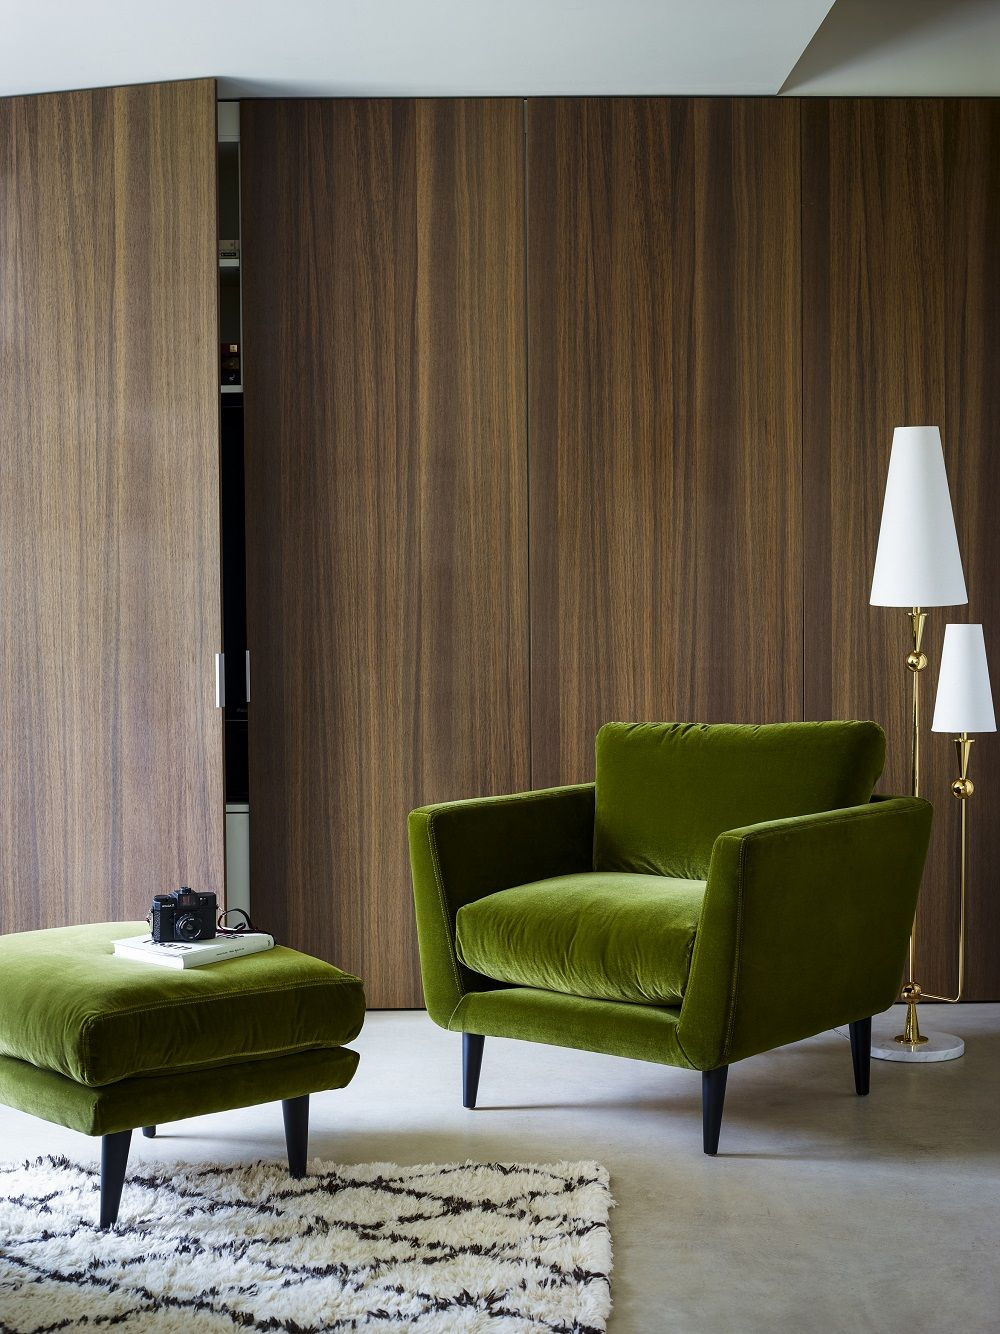 For Major Mid Century Style In Your Home, Add A Green Velvet Armchair And